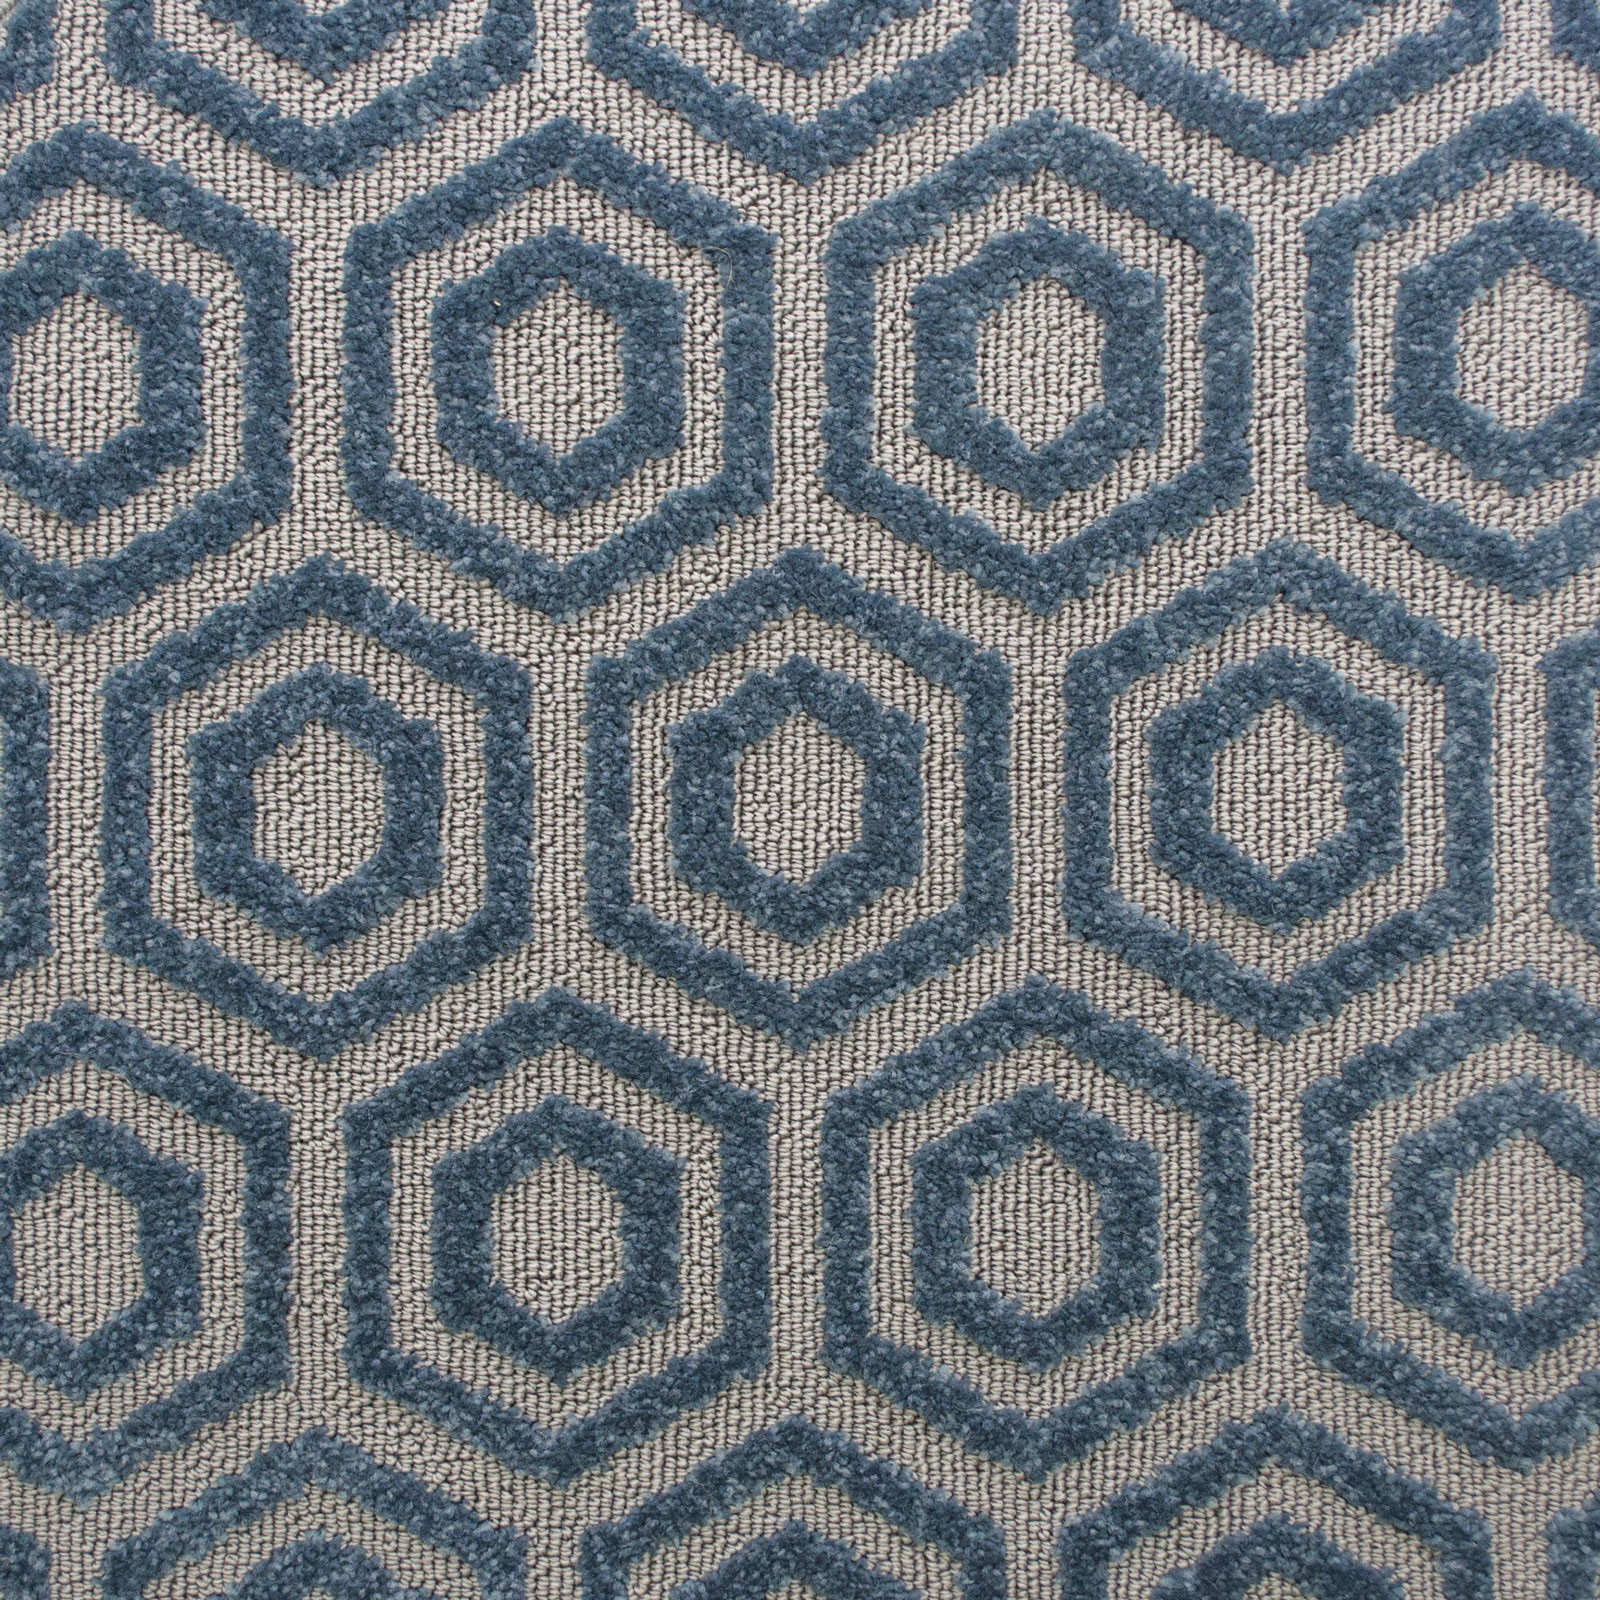 Patterned carpets ... ccp09 00151 mainamarillo patterned carpet shocking outdoor tiles best  for stairs KGLPMAG